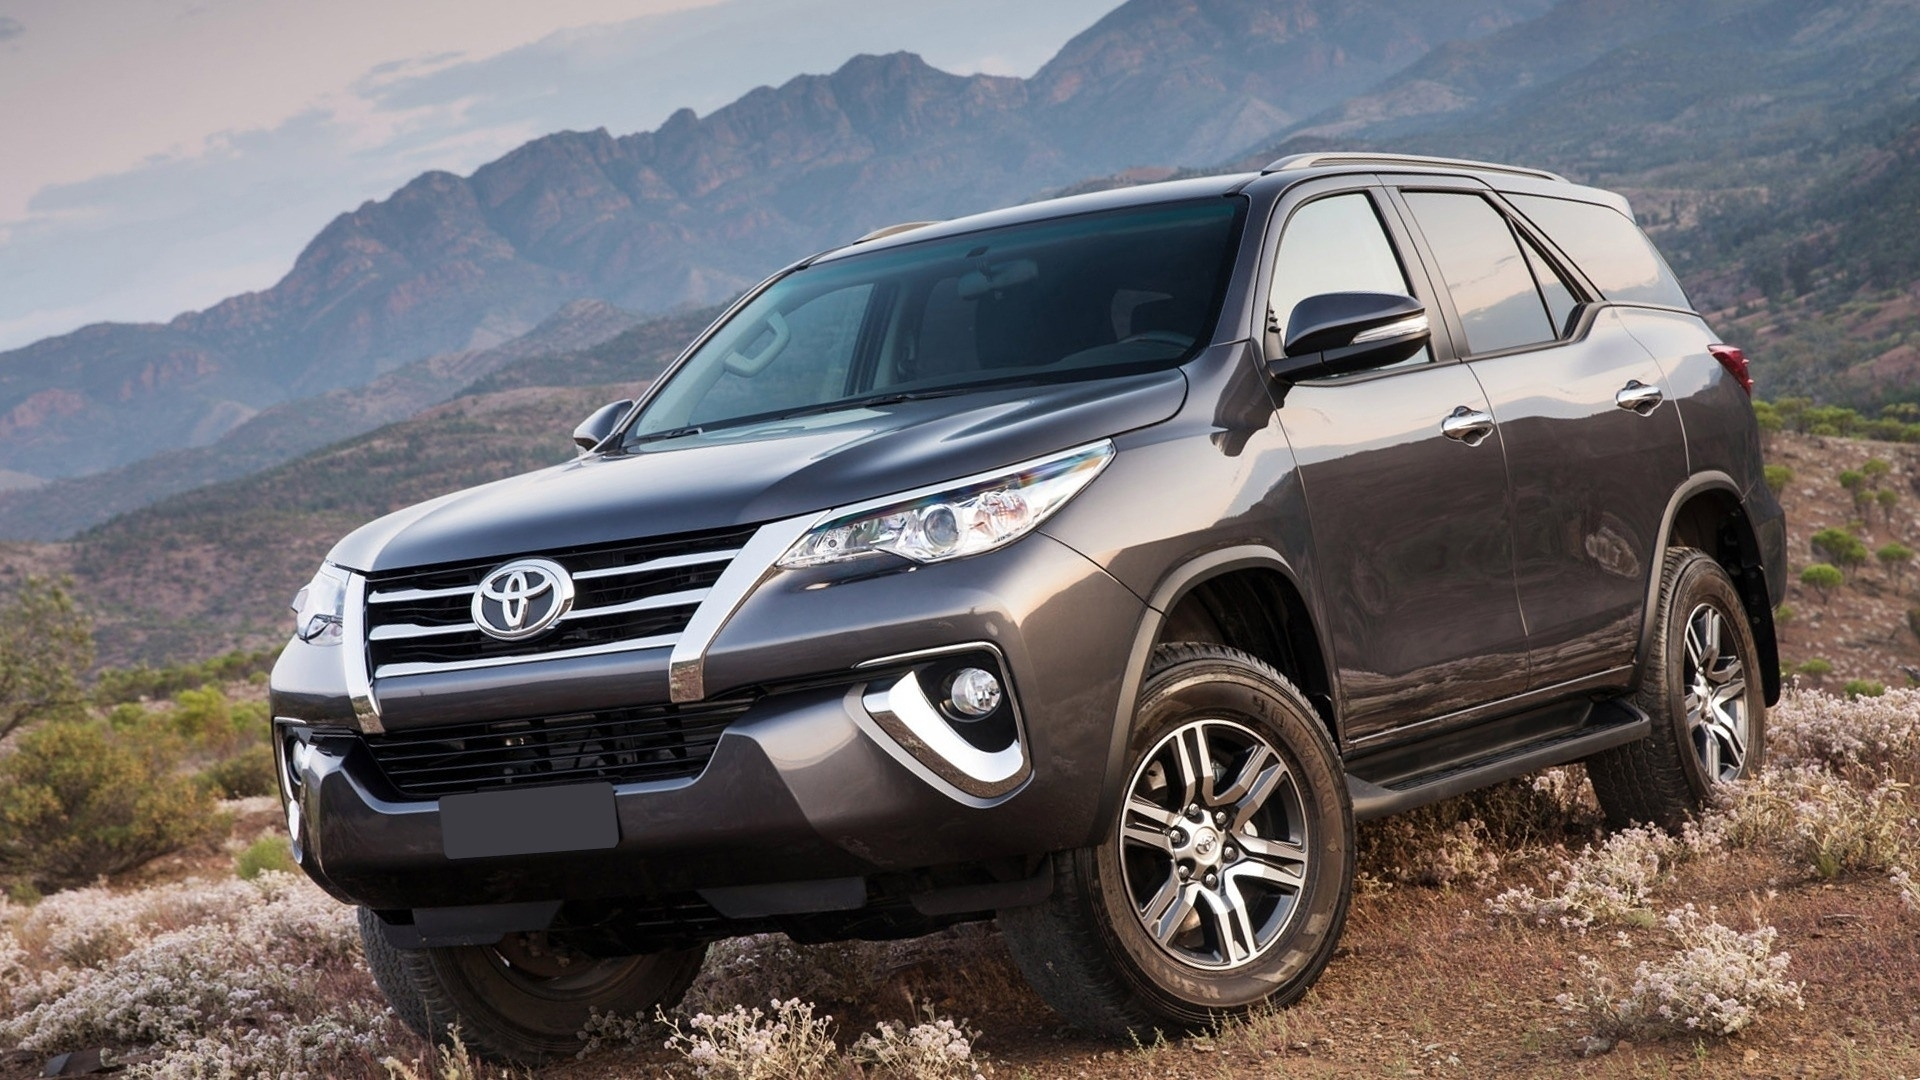 review-bo-xe-toyota-fortuner-2019